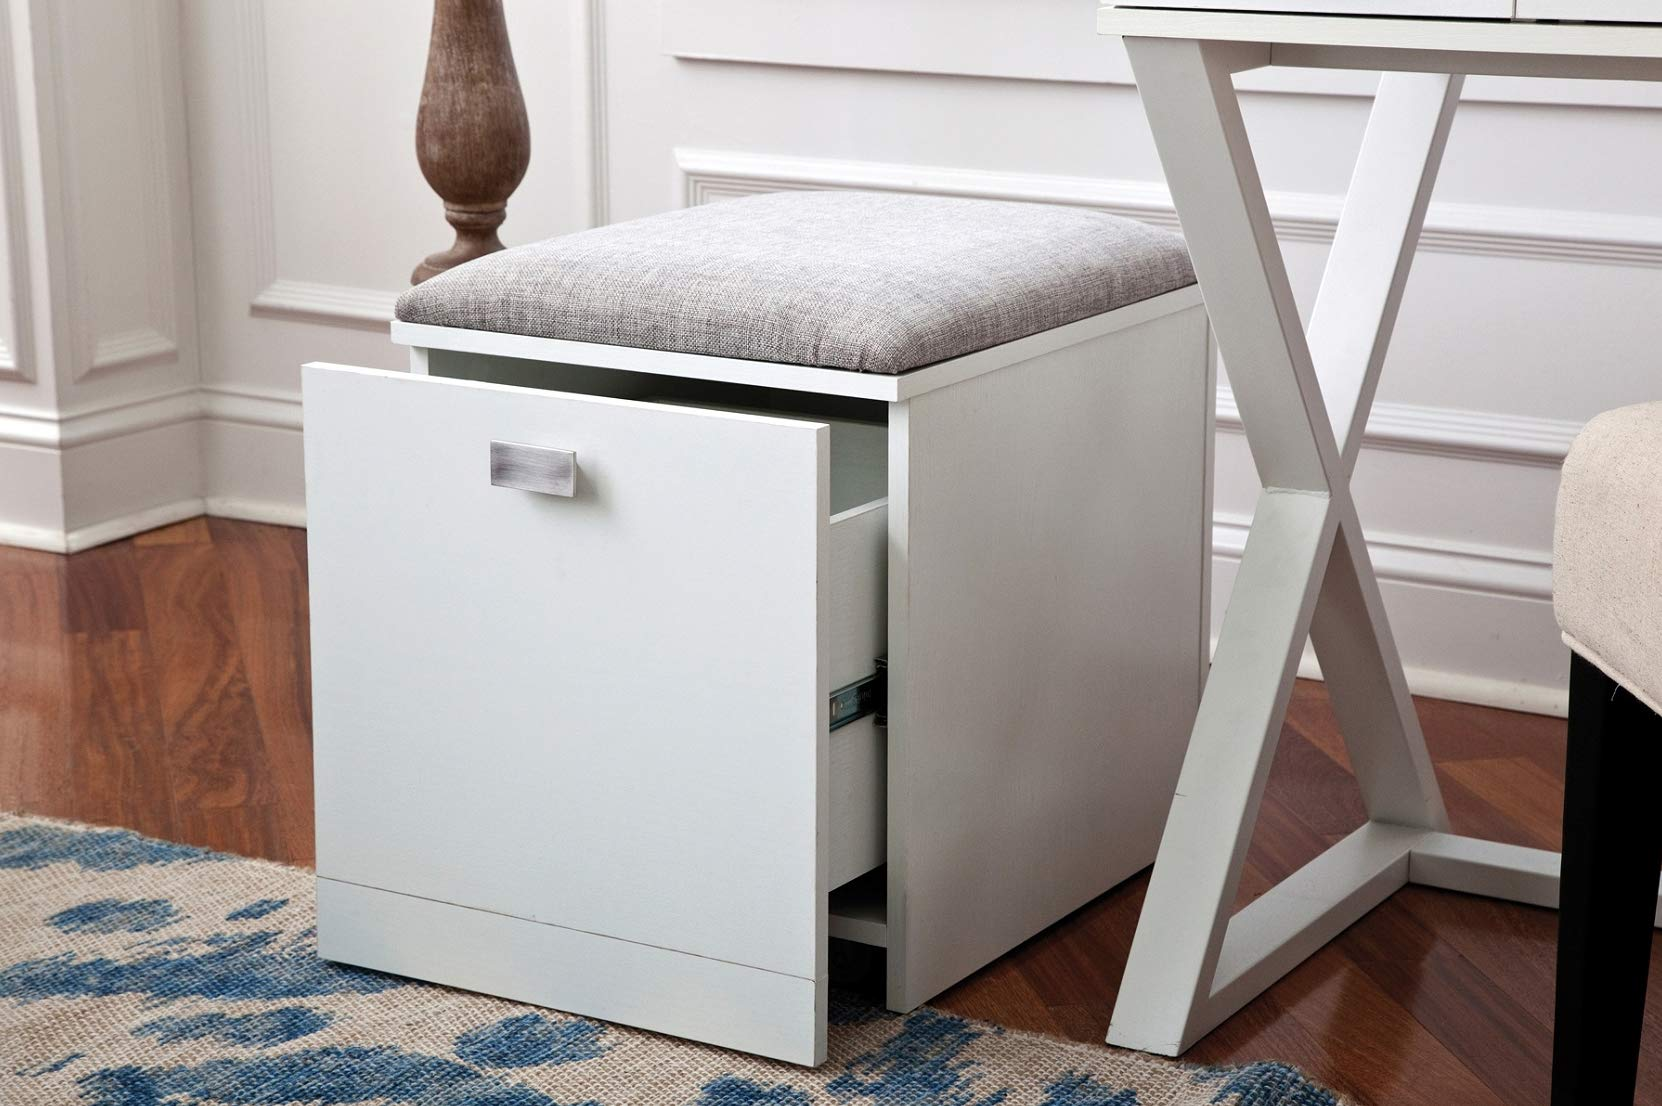 OS Home and Office 751997 Kate Cabinet and Stool in White File